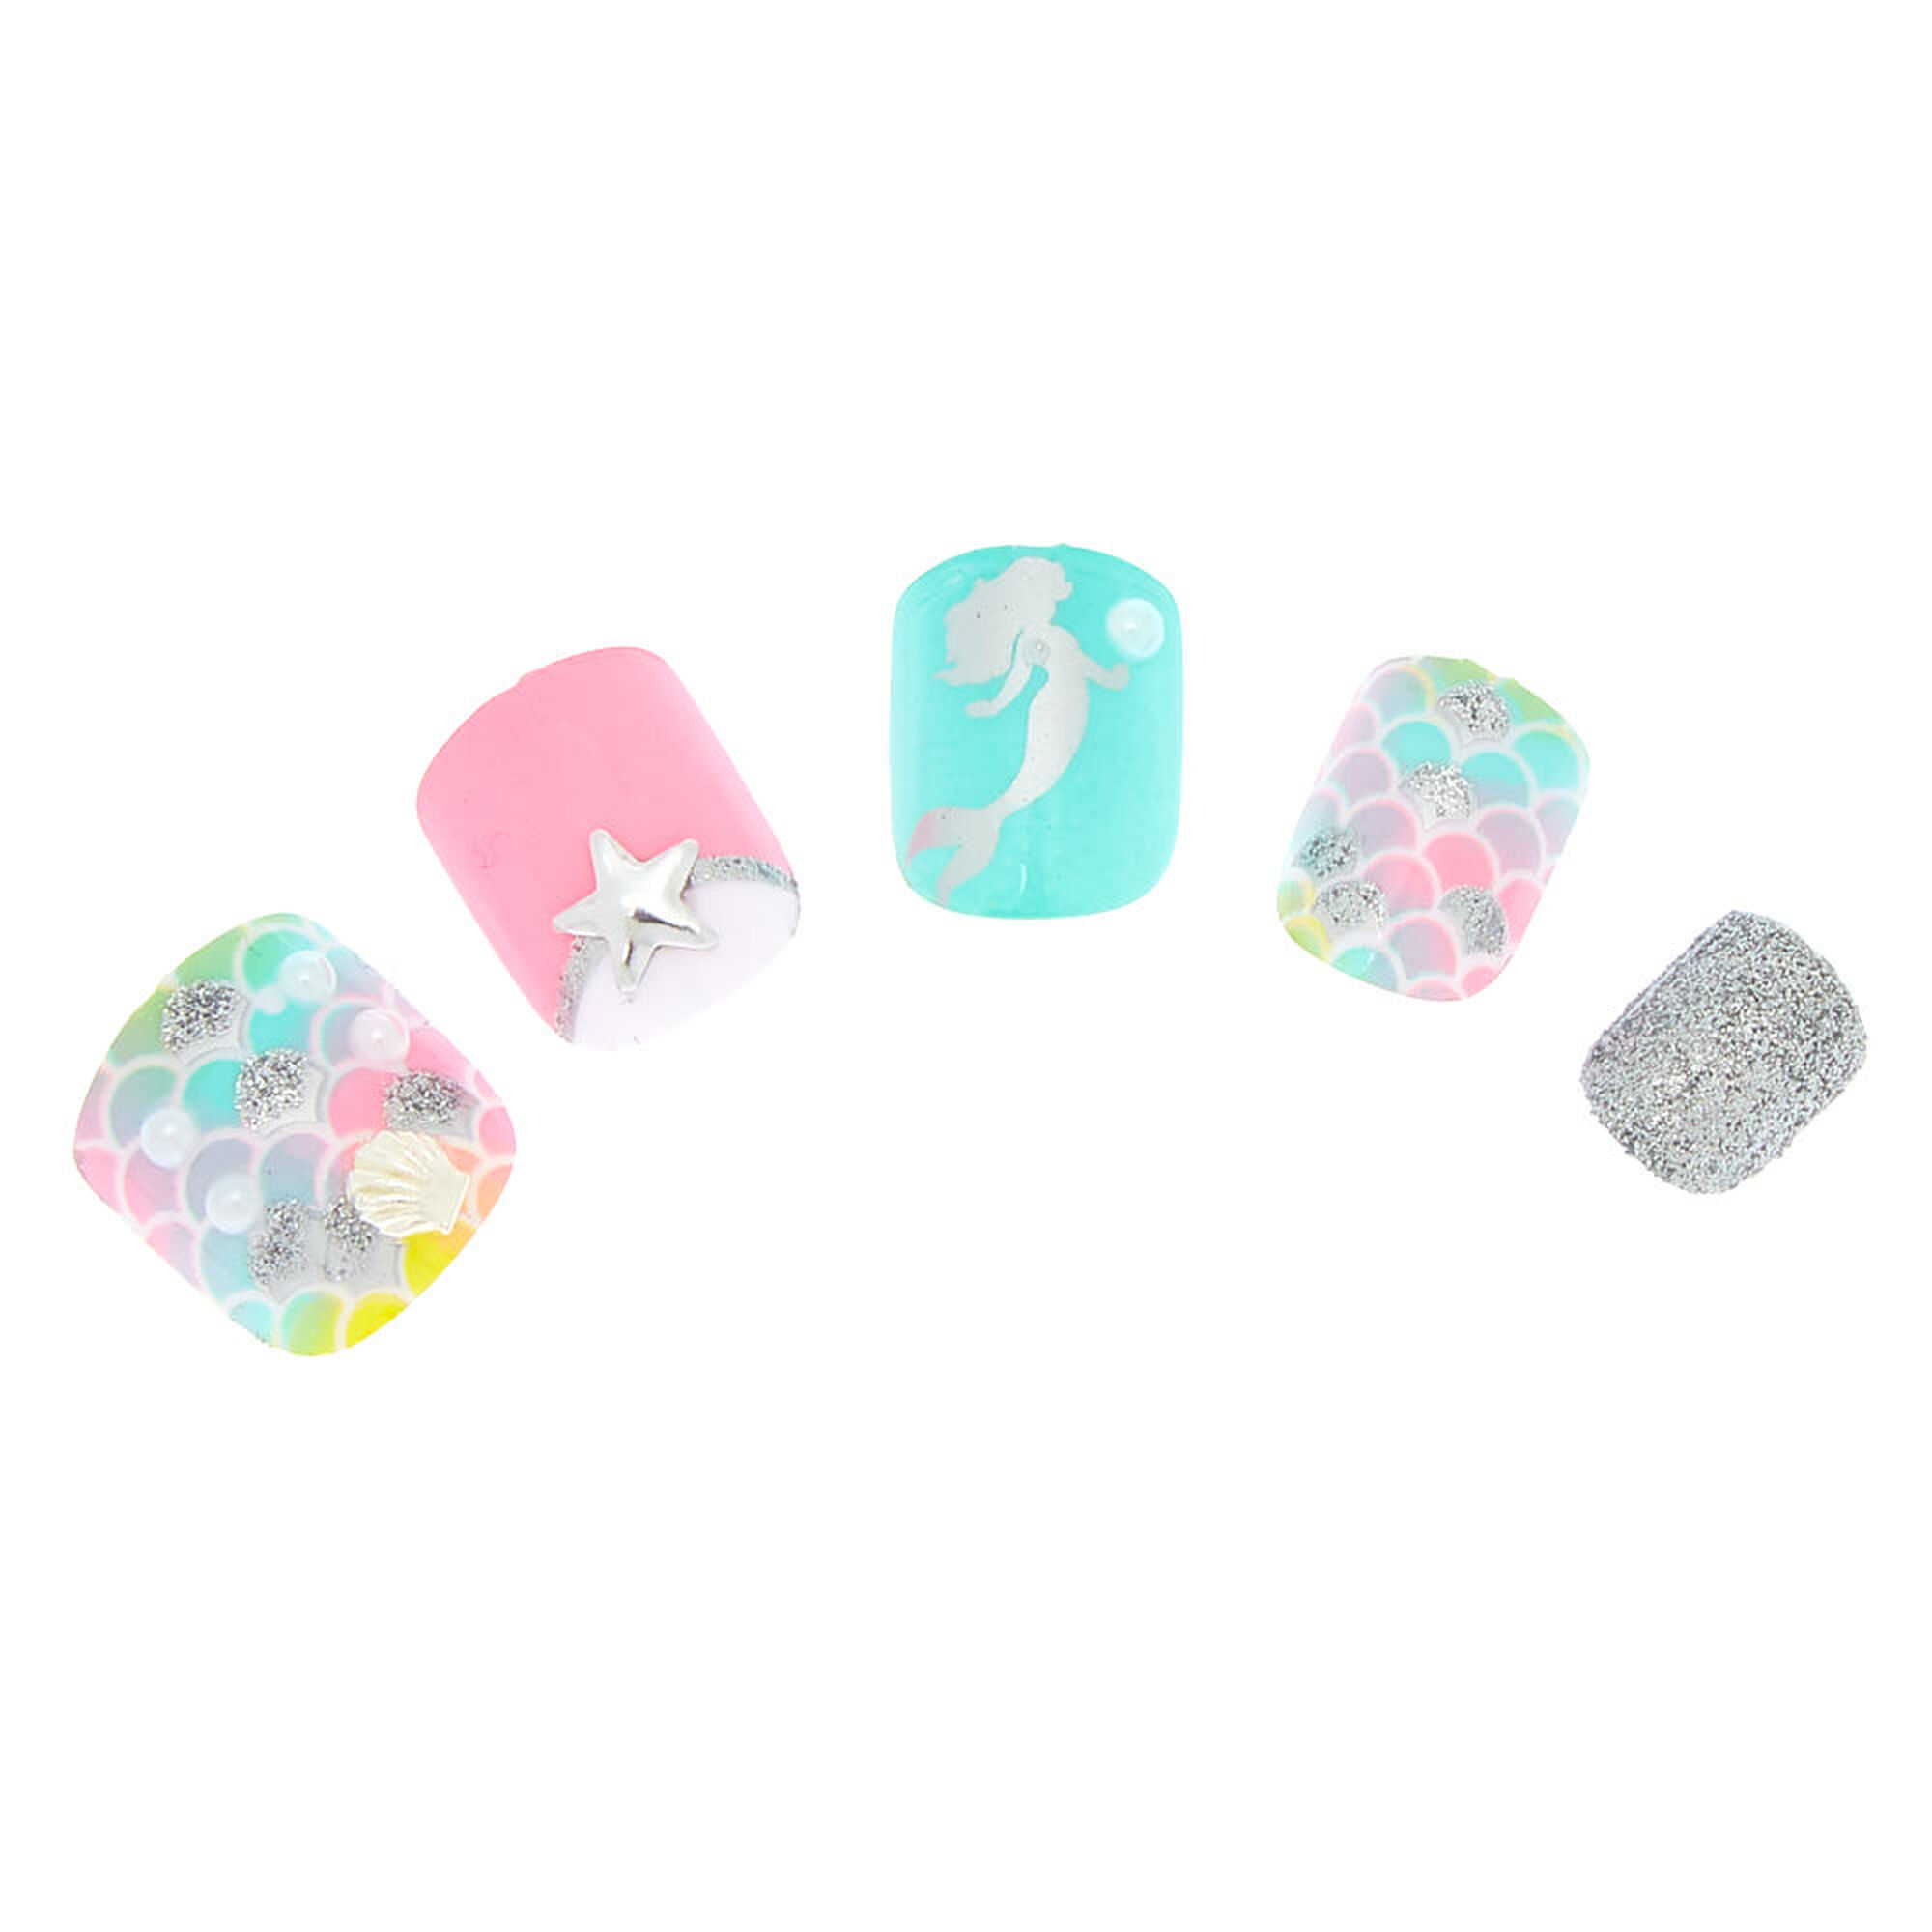 Halloween Nail Art Designs Without Nail Salon Prices: Pastel Mermaid Faux Nail Set - 24 Pack